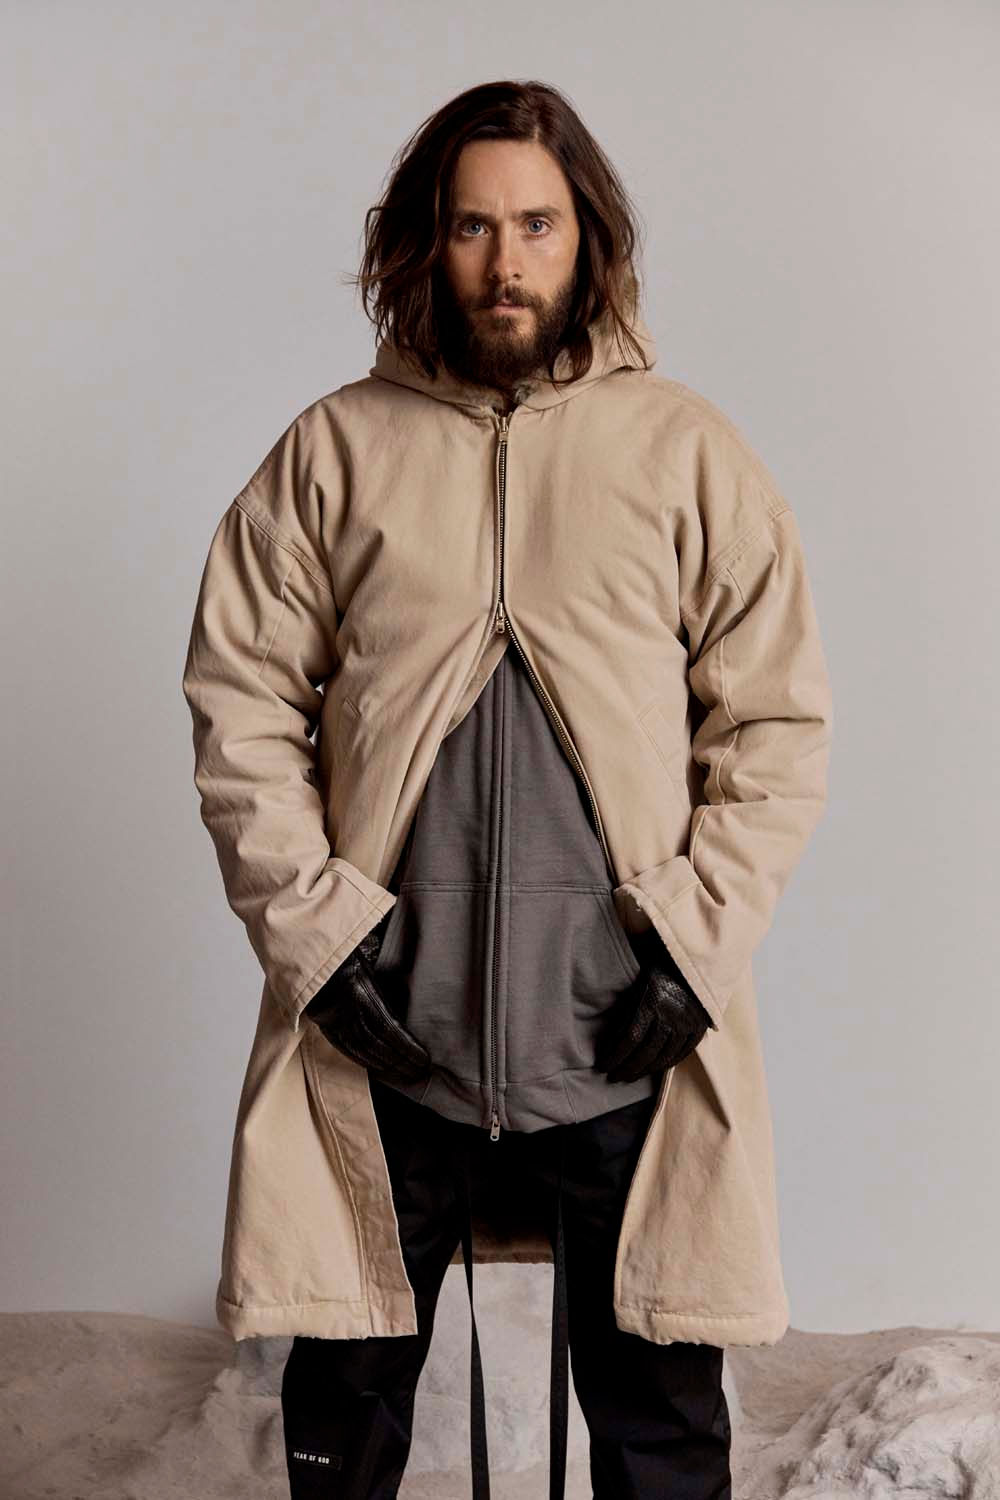 https_%2F%2Fhypebeast.com%2Fimage%2F2018%2F09%2Ffear-of-god-6-sixth-collection-jared-leto-nike-16.jpg